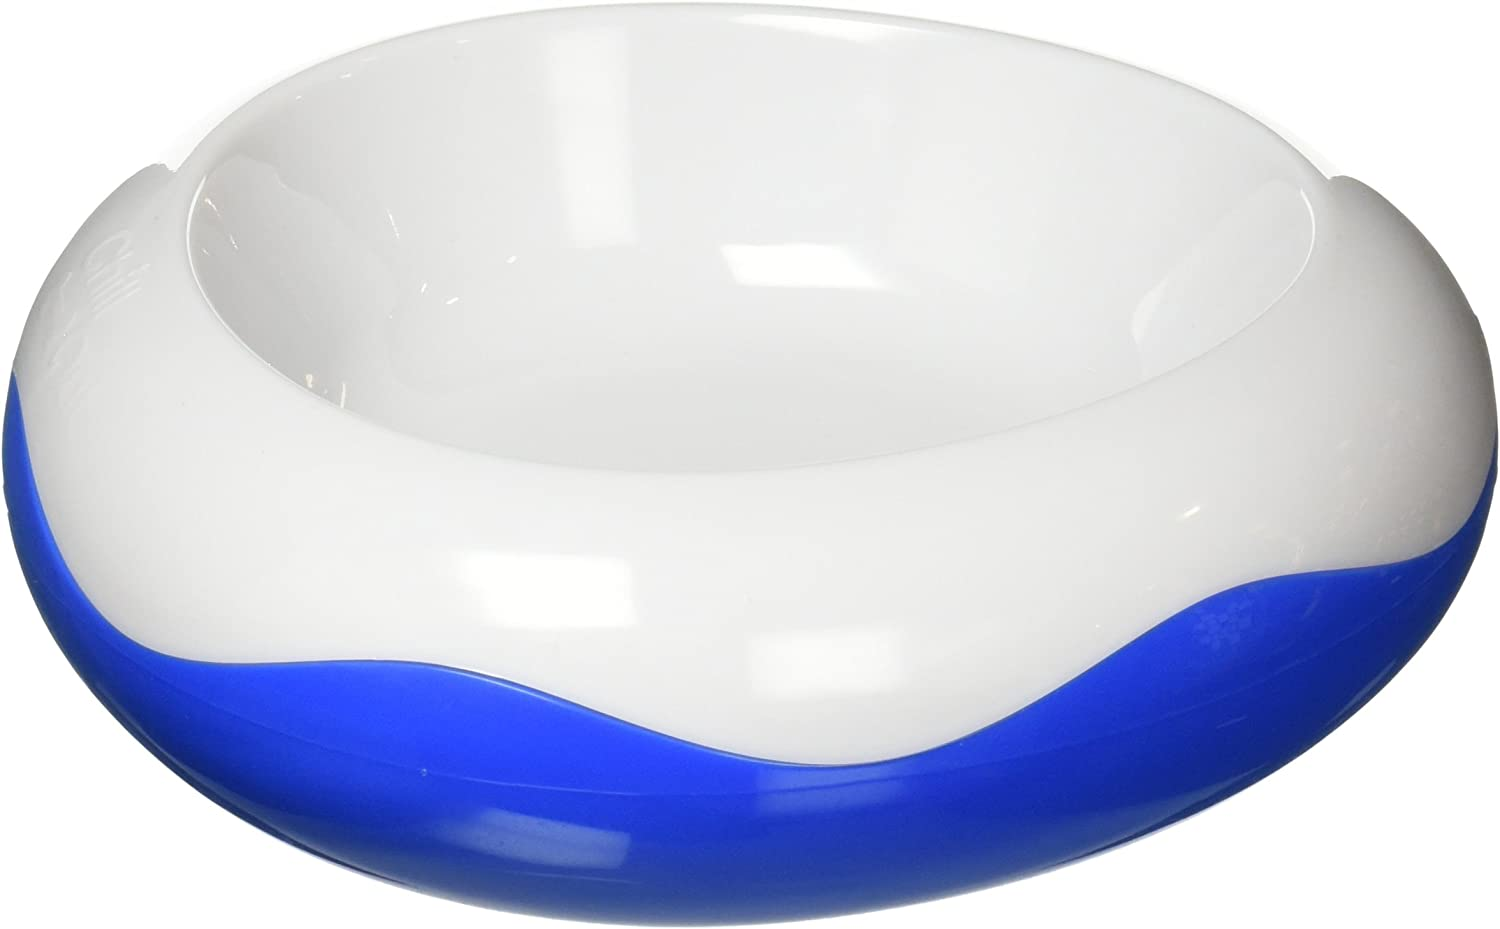 Dog Pet Cooling Bowl Large 500ml - Simply Freeze And Keeps Dogs Water Or Food